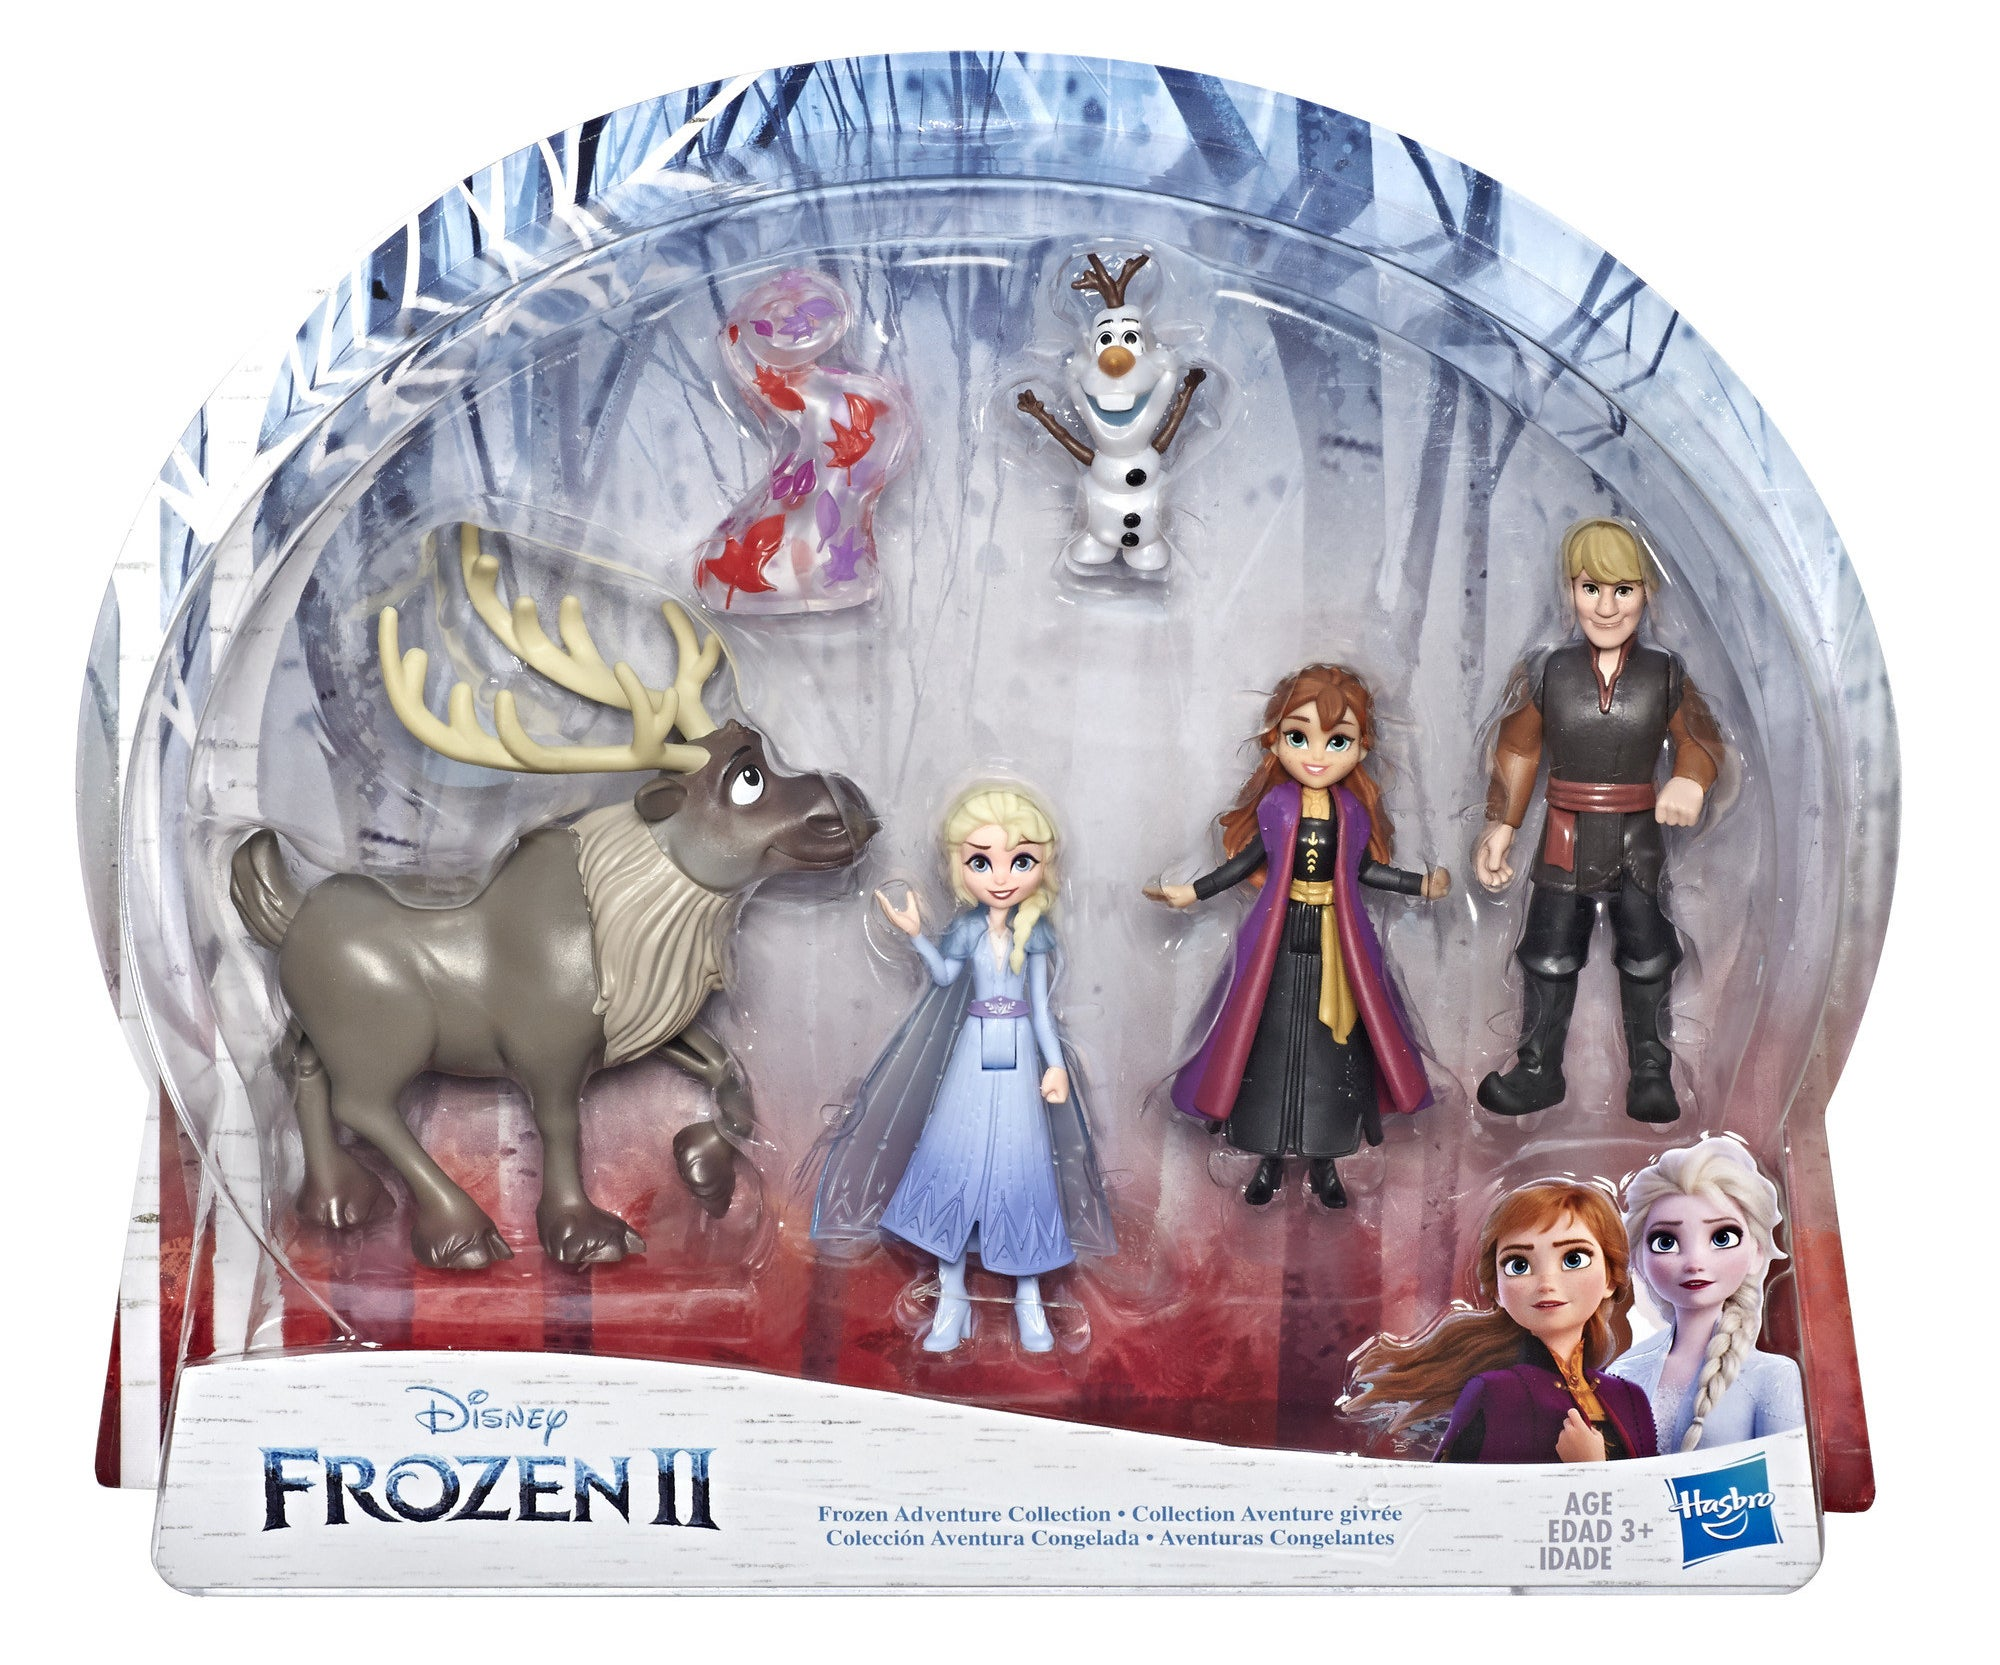 The Frozen 2 playset, which contains all six action figures